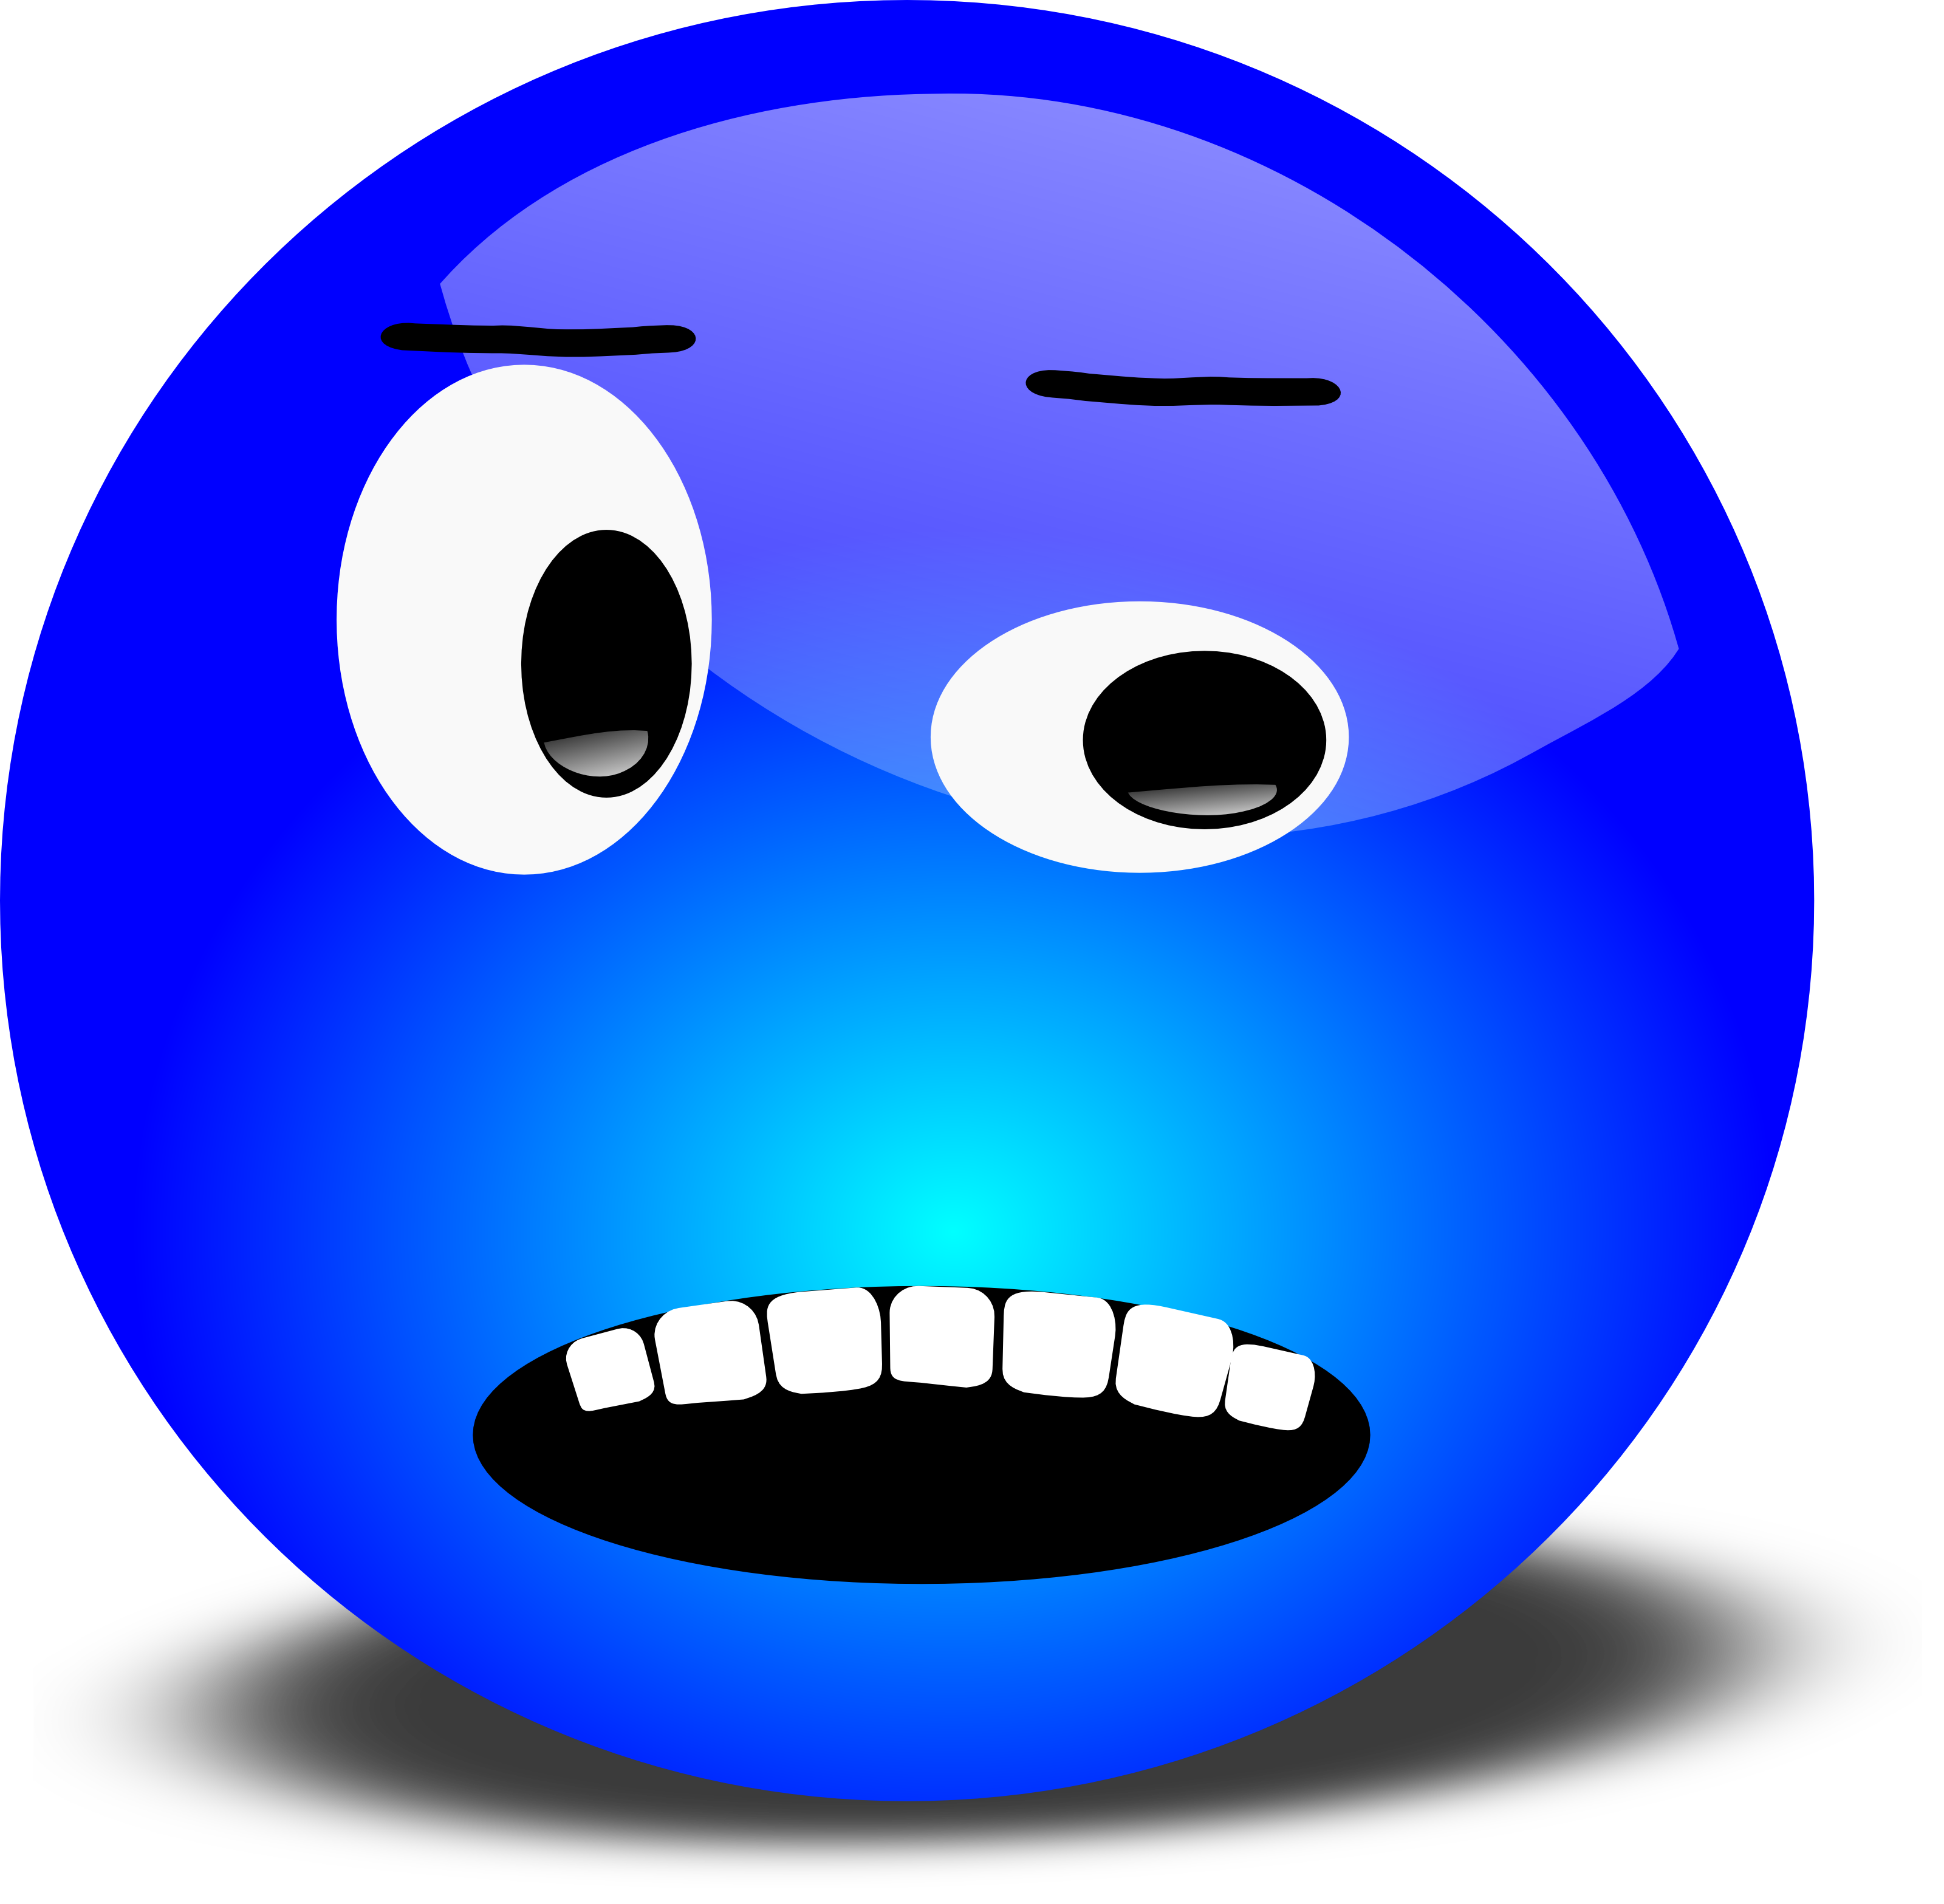 Free 3D Annoyed Smiley Face Clipart Illustration - Free Clip Art Smiley Faces Emotions